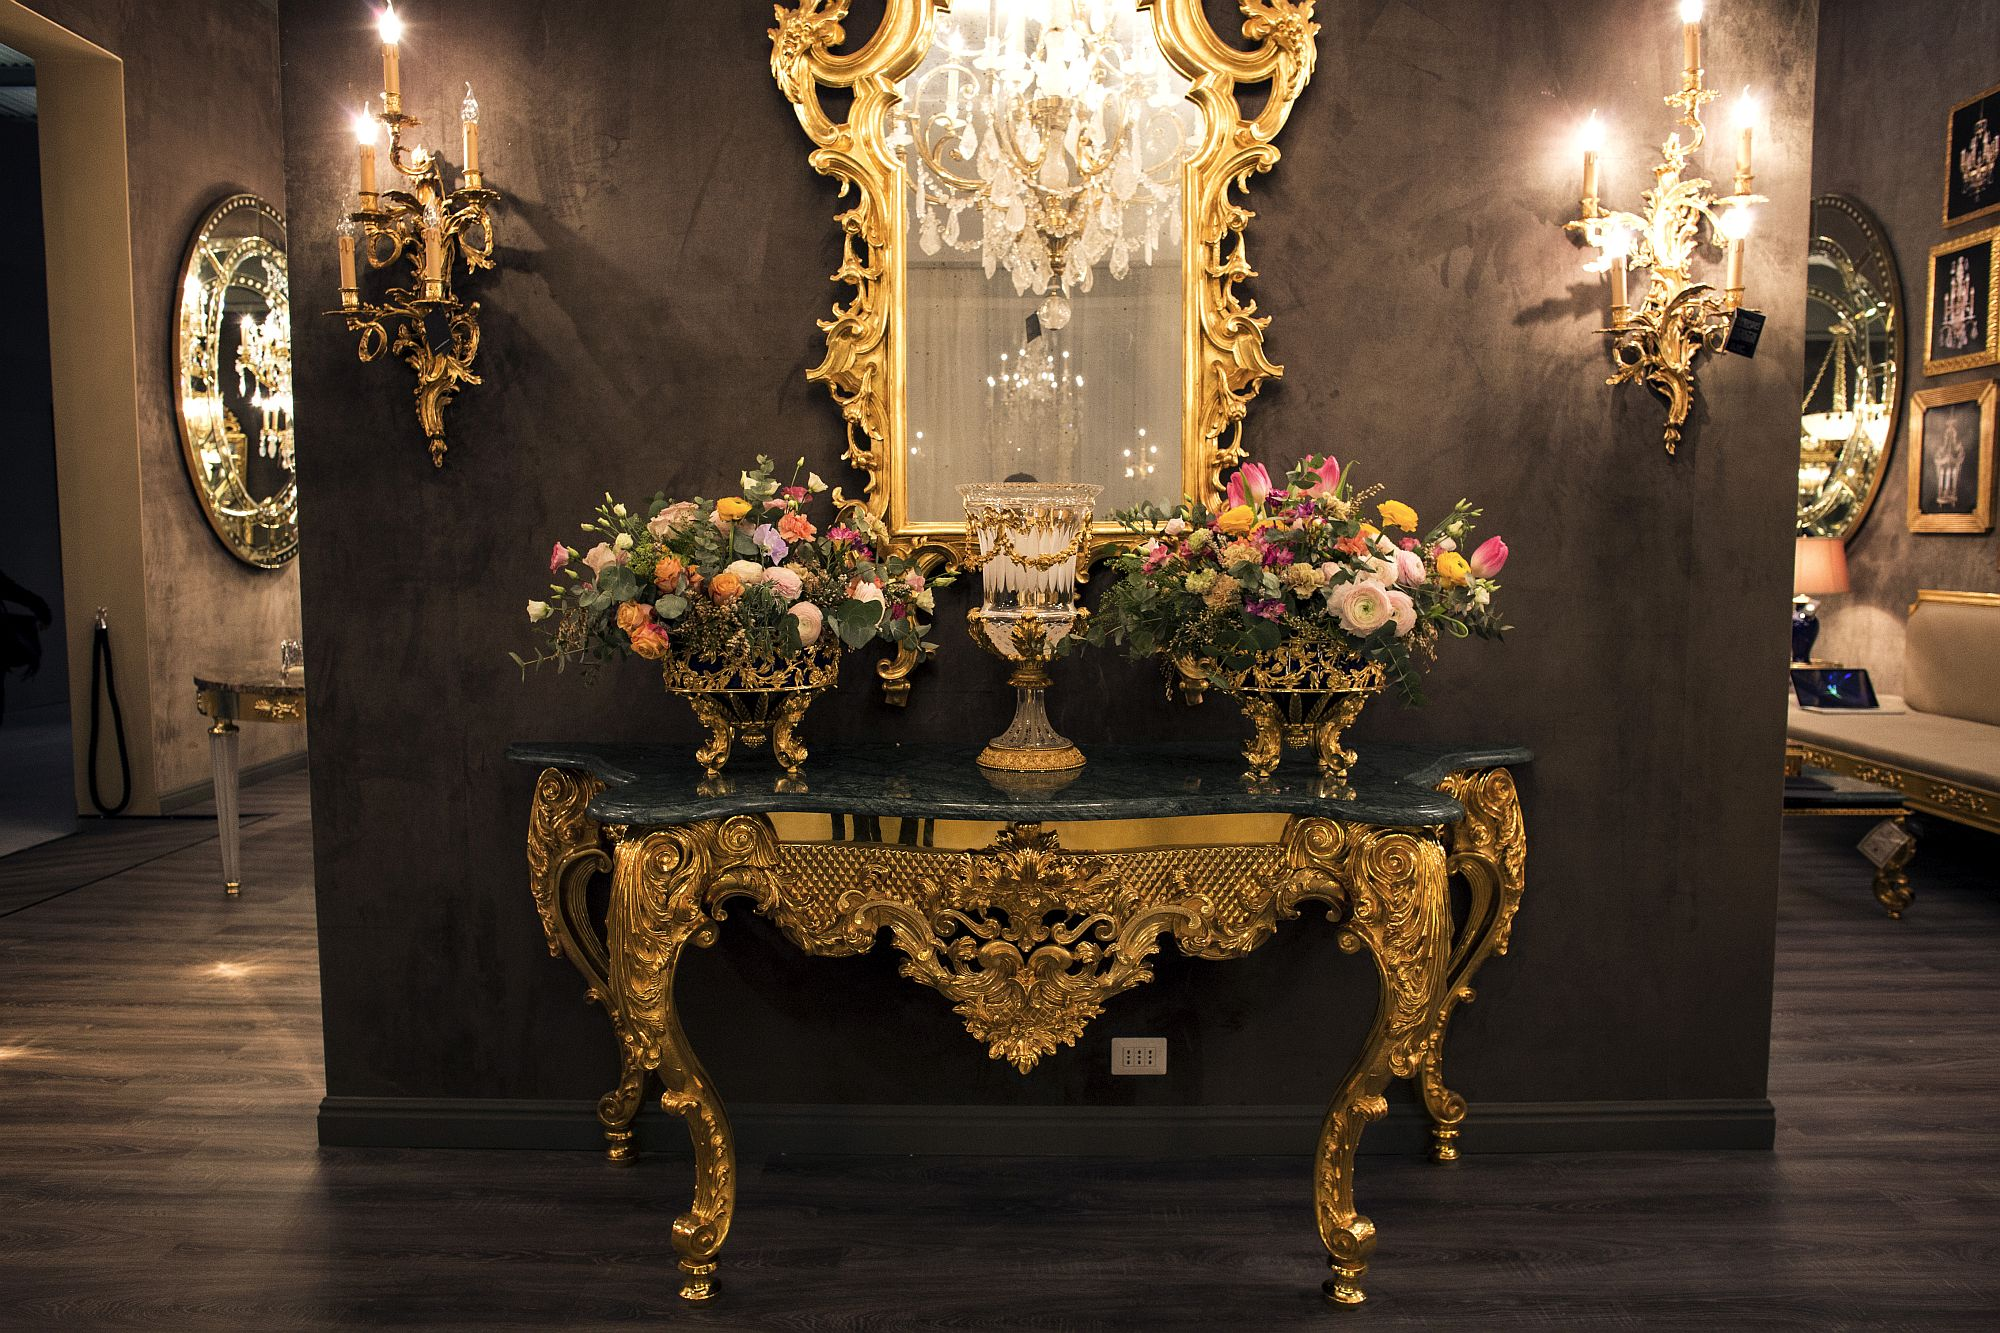 Ornate gold frame of the mirror brings back regal Victorian style!